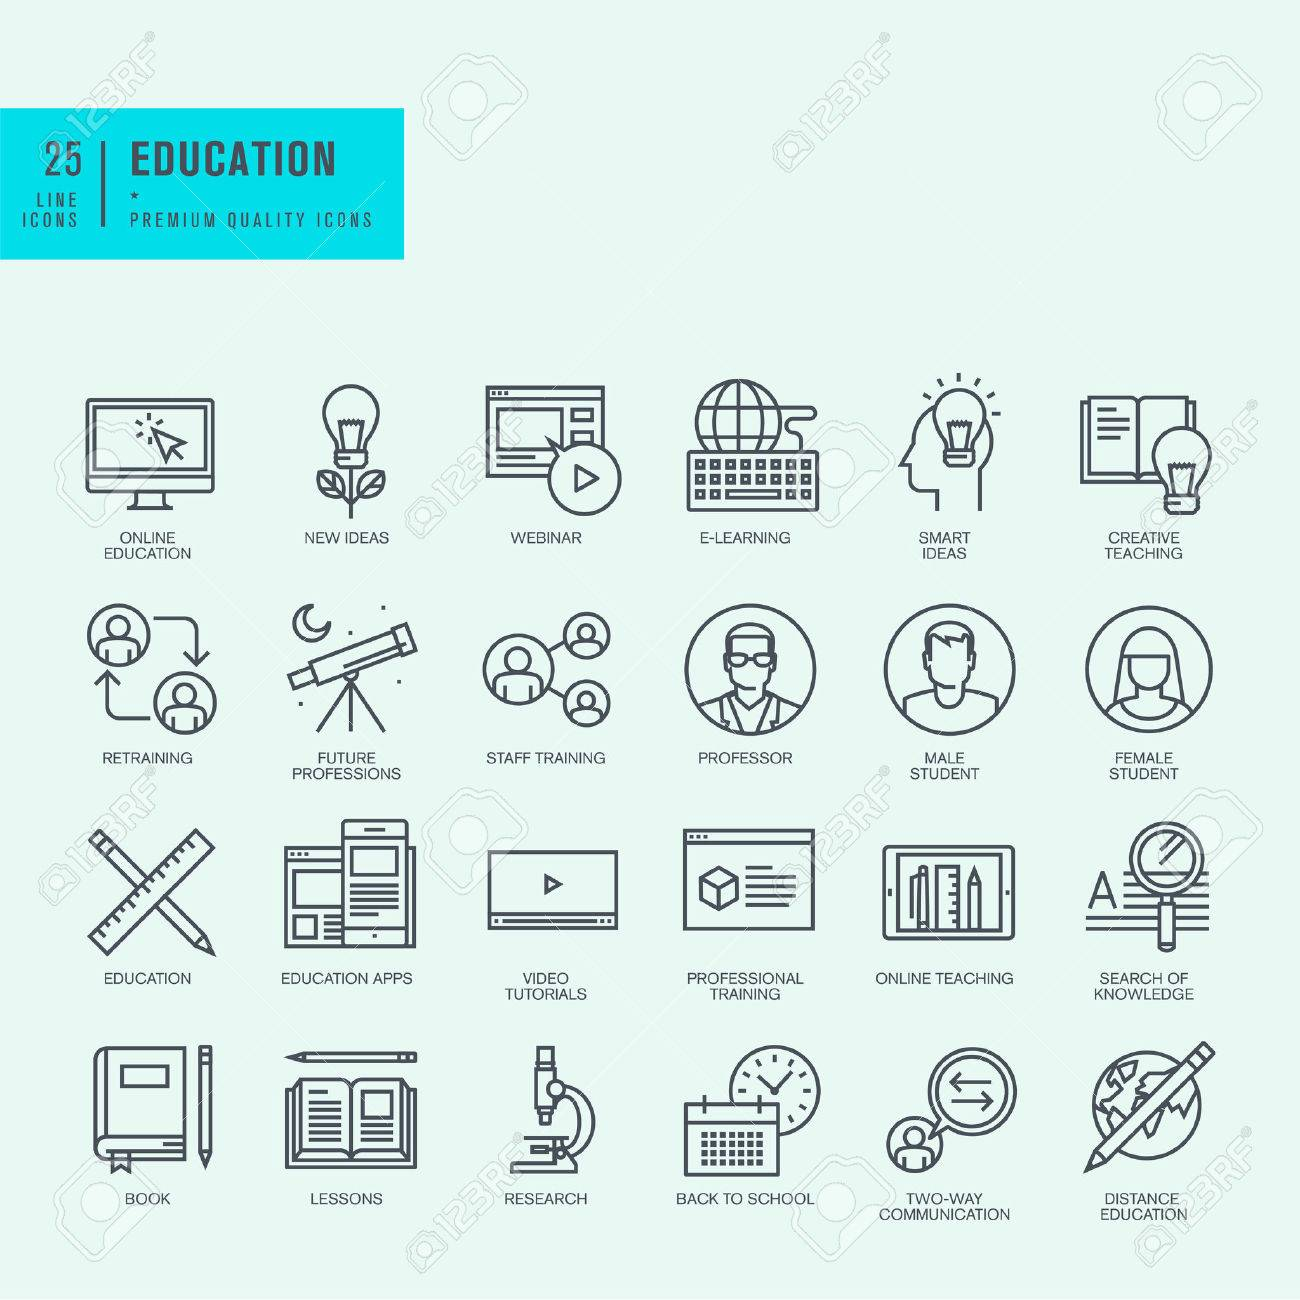 Thin line icons set. Icons for online education video tutorials training courses. Stock Vector - 41717821